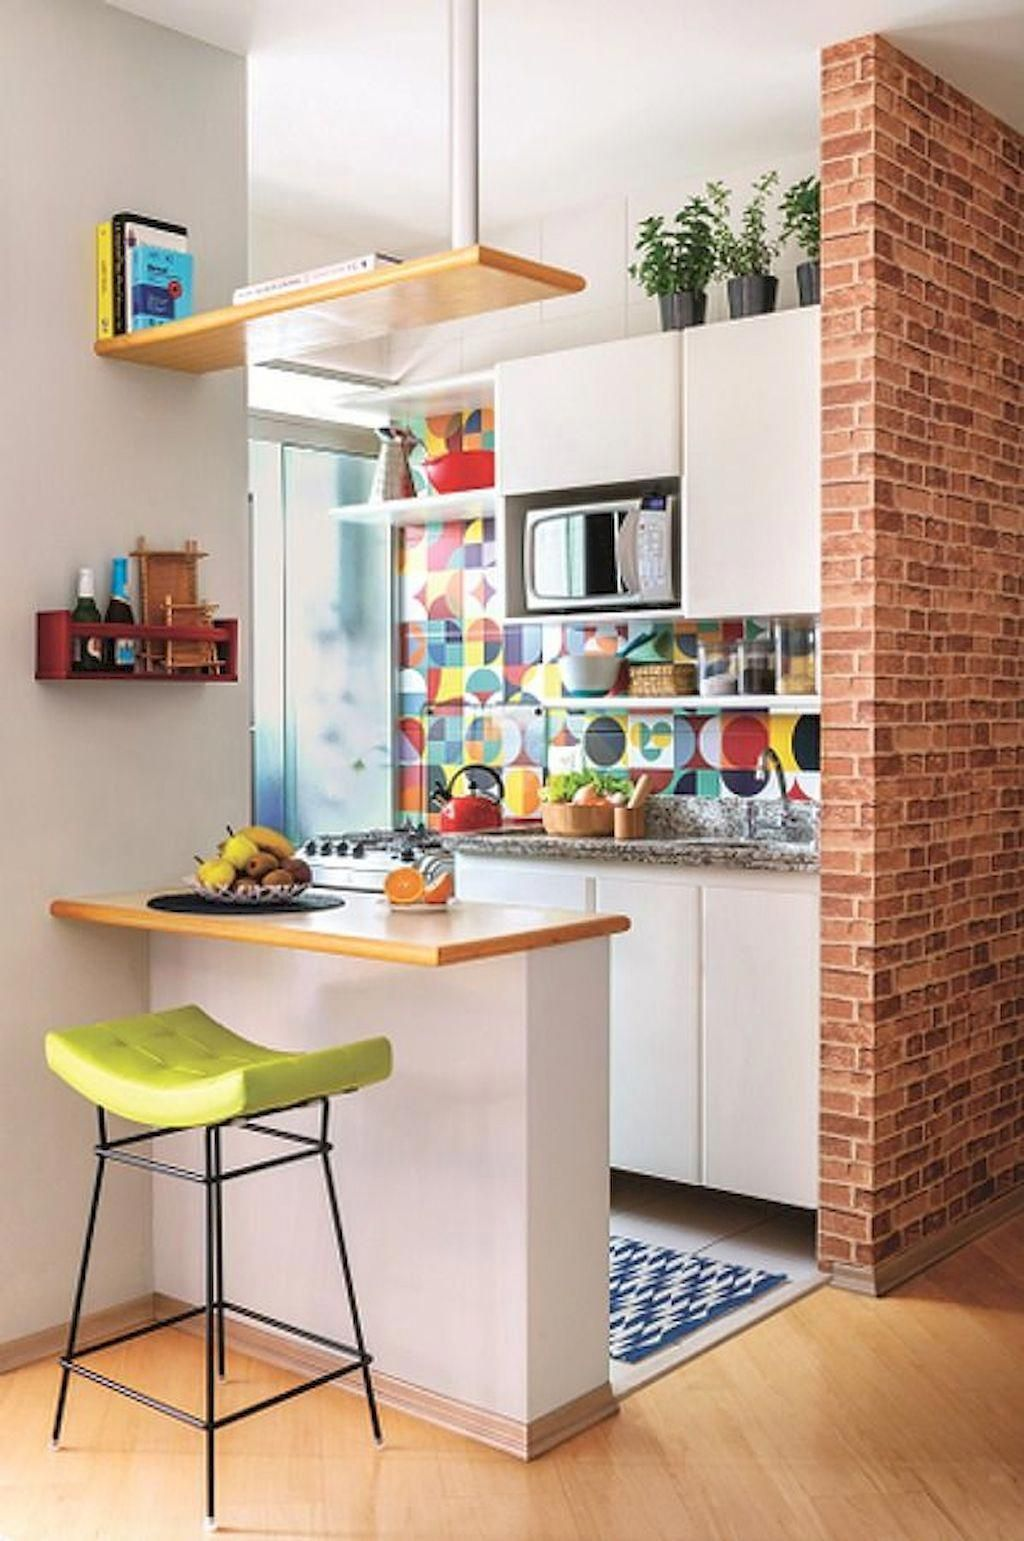 You Can Discover Hanging Organizers That Can Be Set Up Without Screws Like The One In The Small Kitchen Makeovers Kitchen Remodel Small Kitchen Design Small